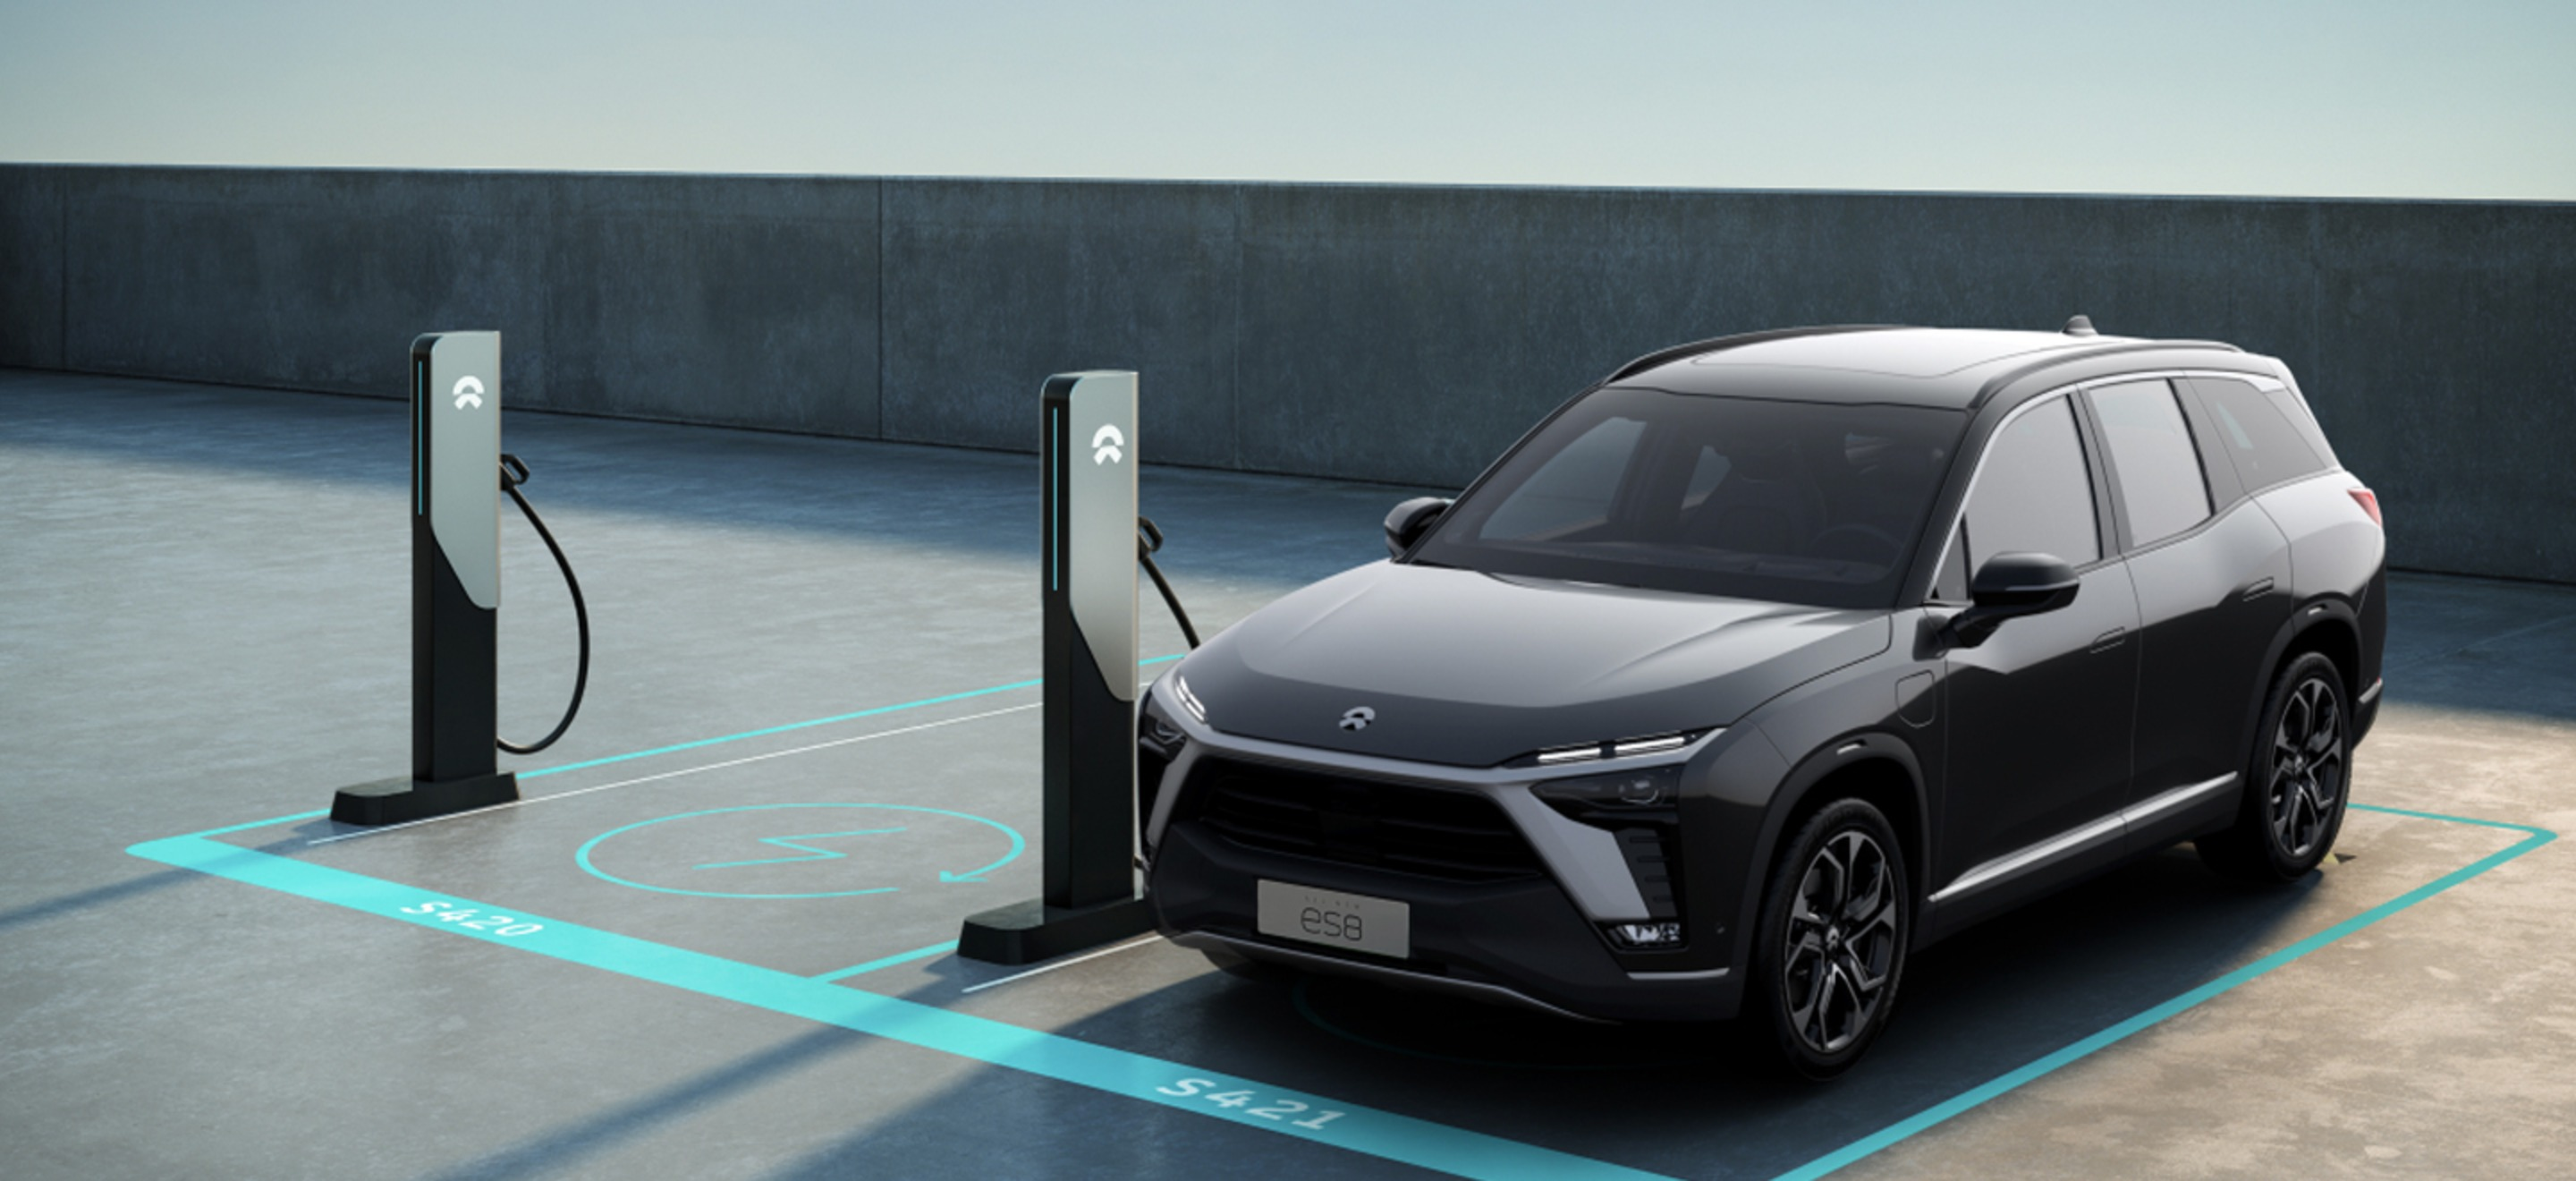 Supercharging and battery swap in race to cut EV charging times in China